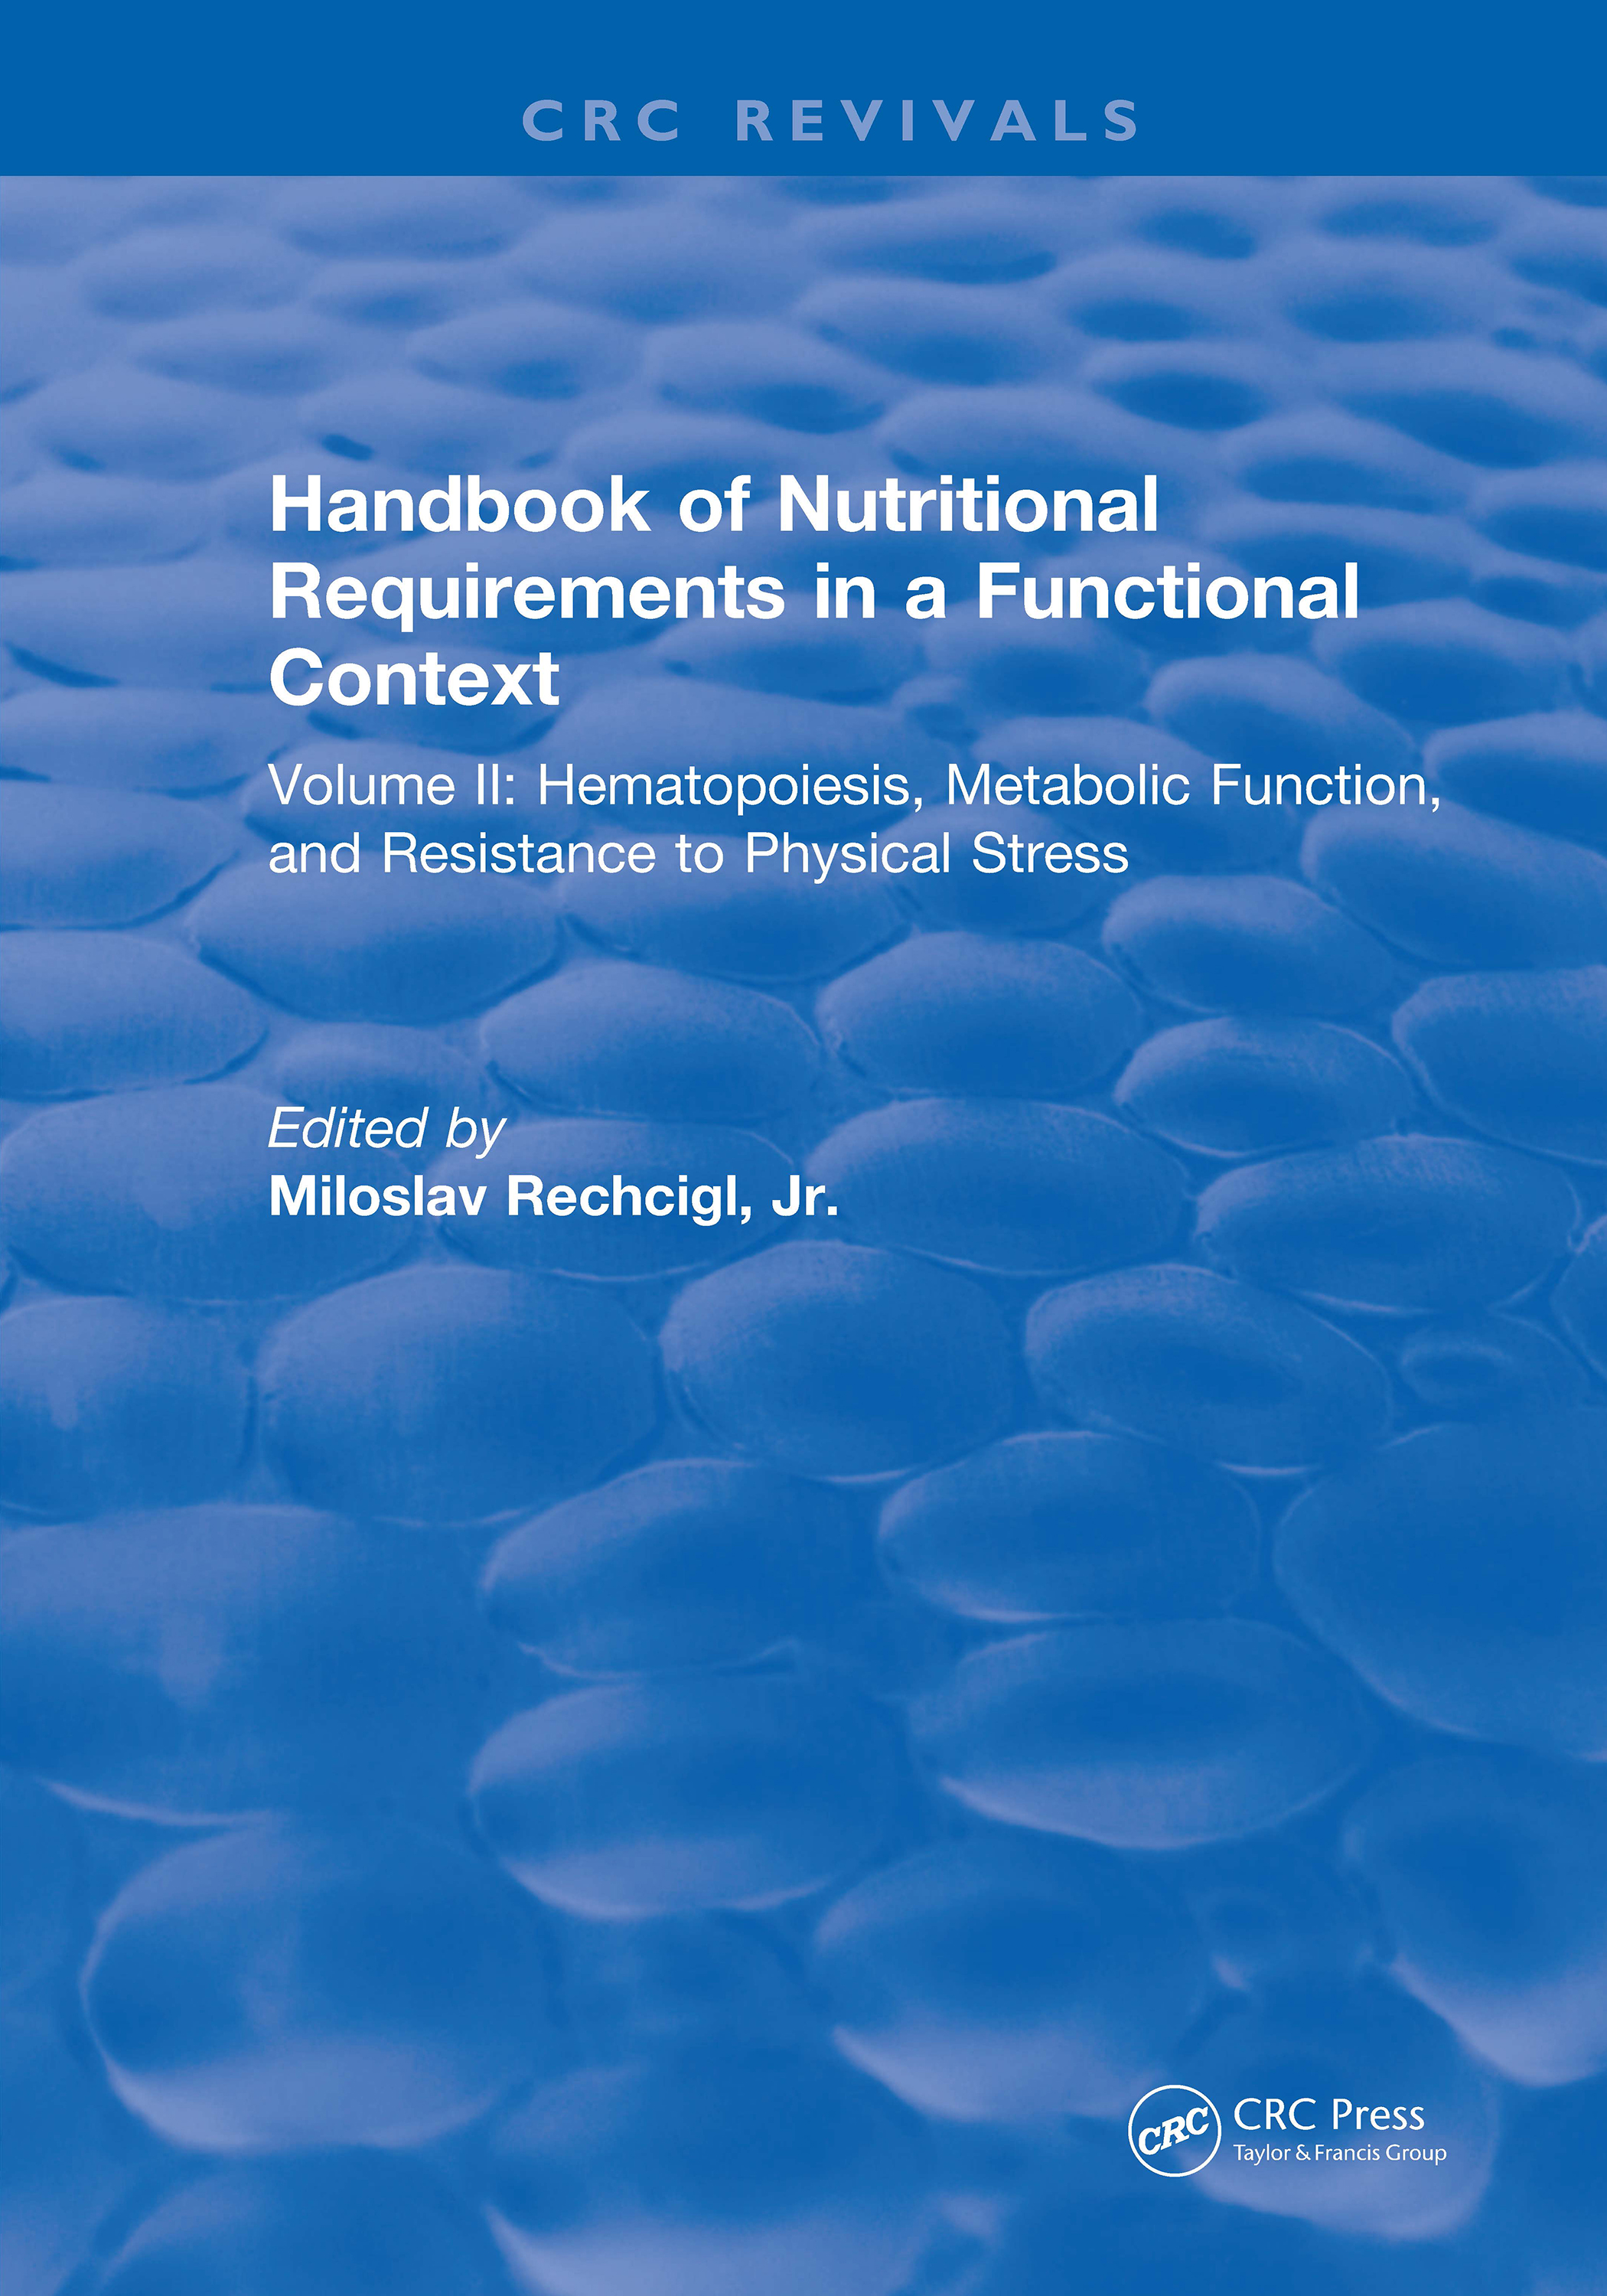 Handbook of Nutritional Requirements in a Functional Context